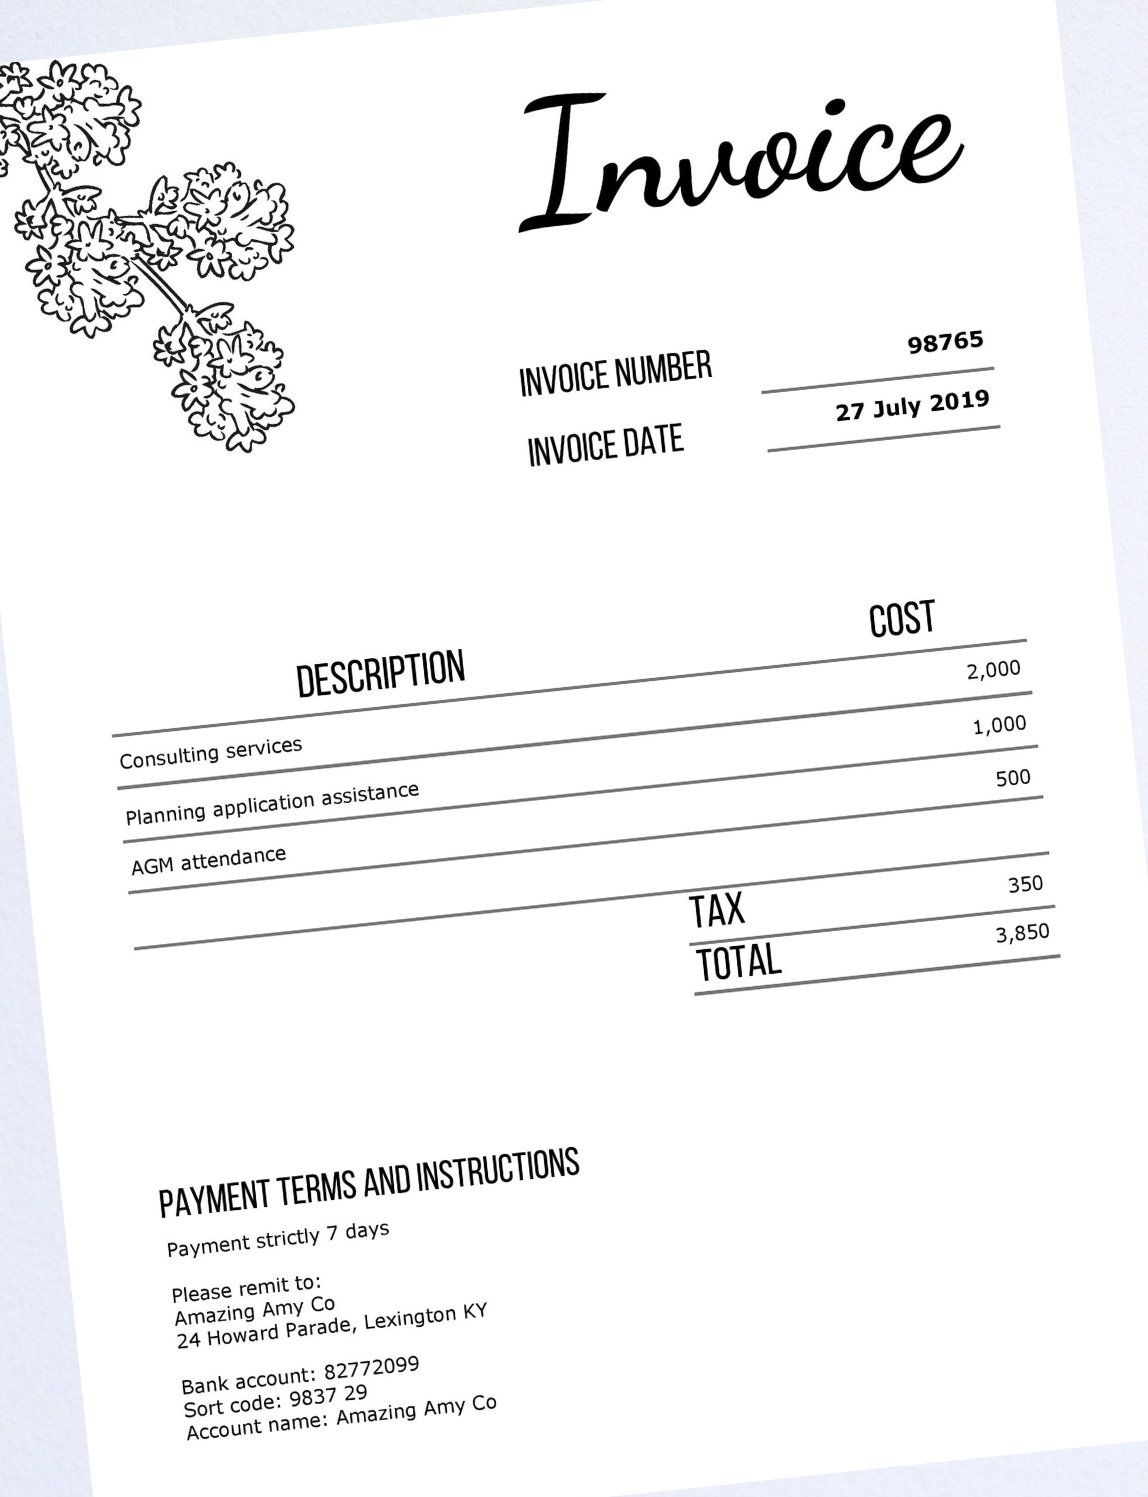 Editable Pdf Invoice Template Professional Tax Invoice Etsy Invoice Template Lettering Design Printable Day Planner